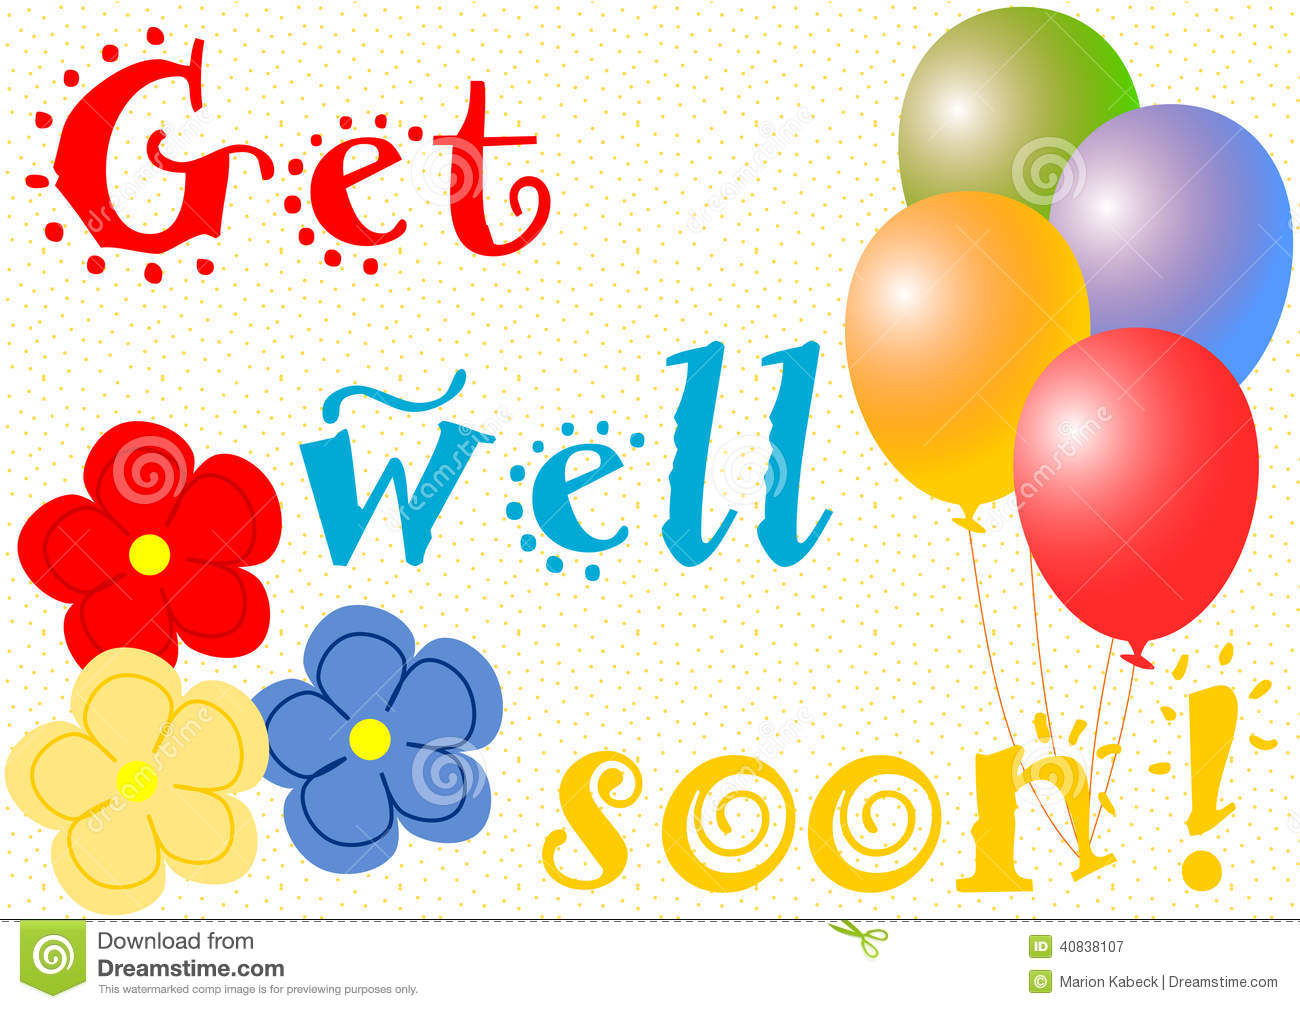 Free clipart images get well soon graphic free stock Free Clipart Images Get Well Soon & Free Clip Art Images #3593 ... graphic free stock